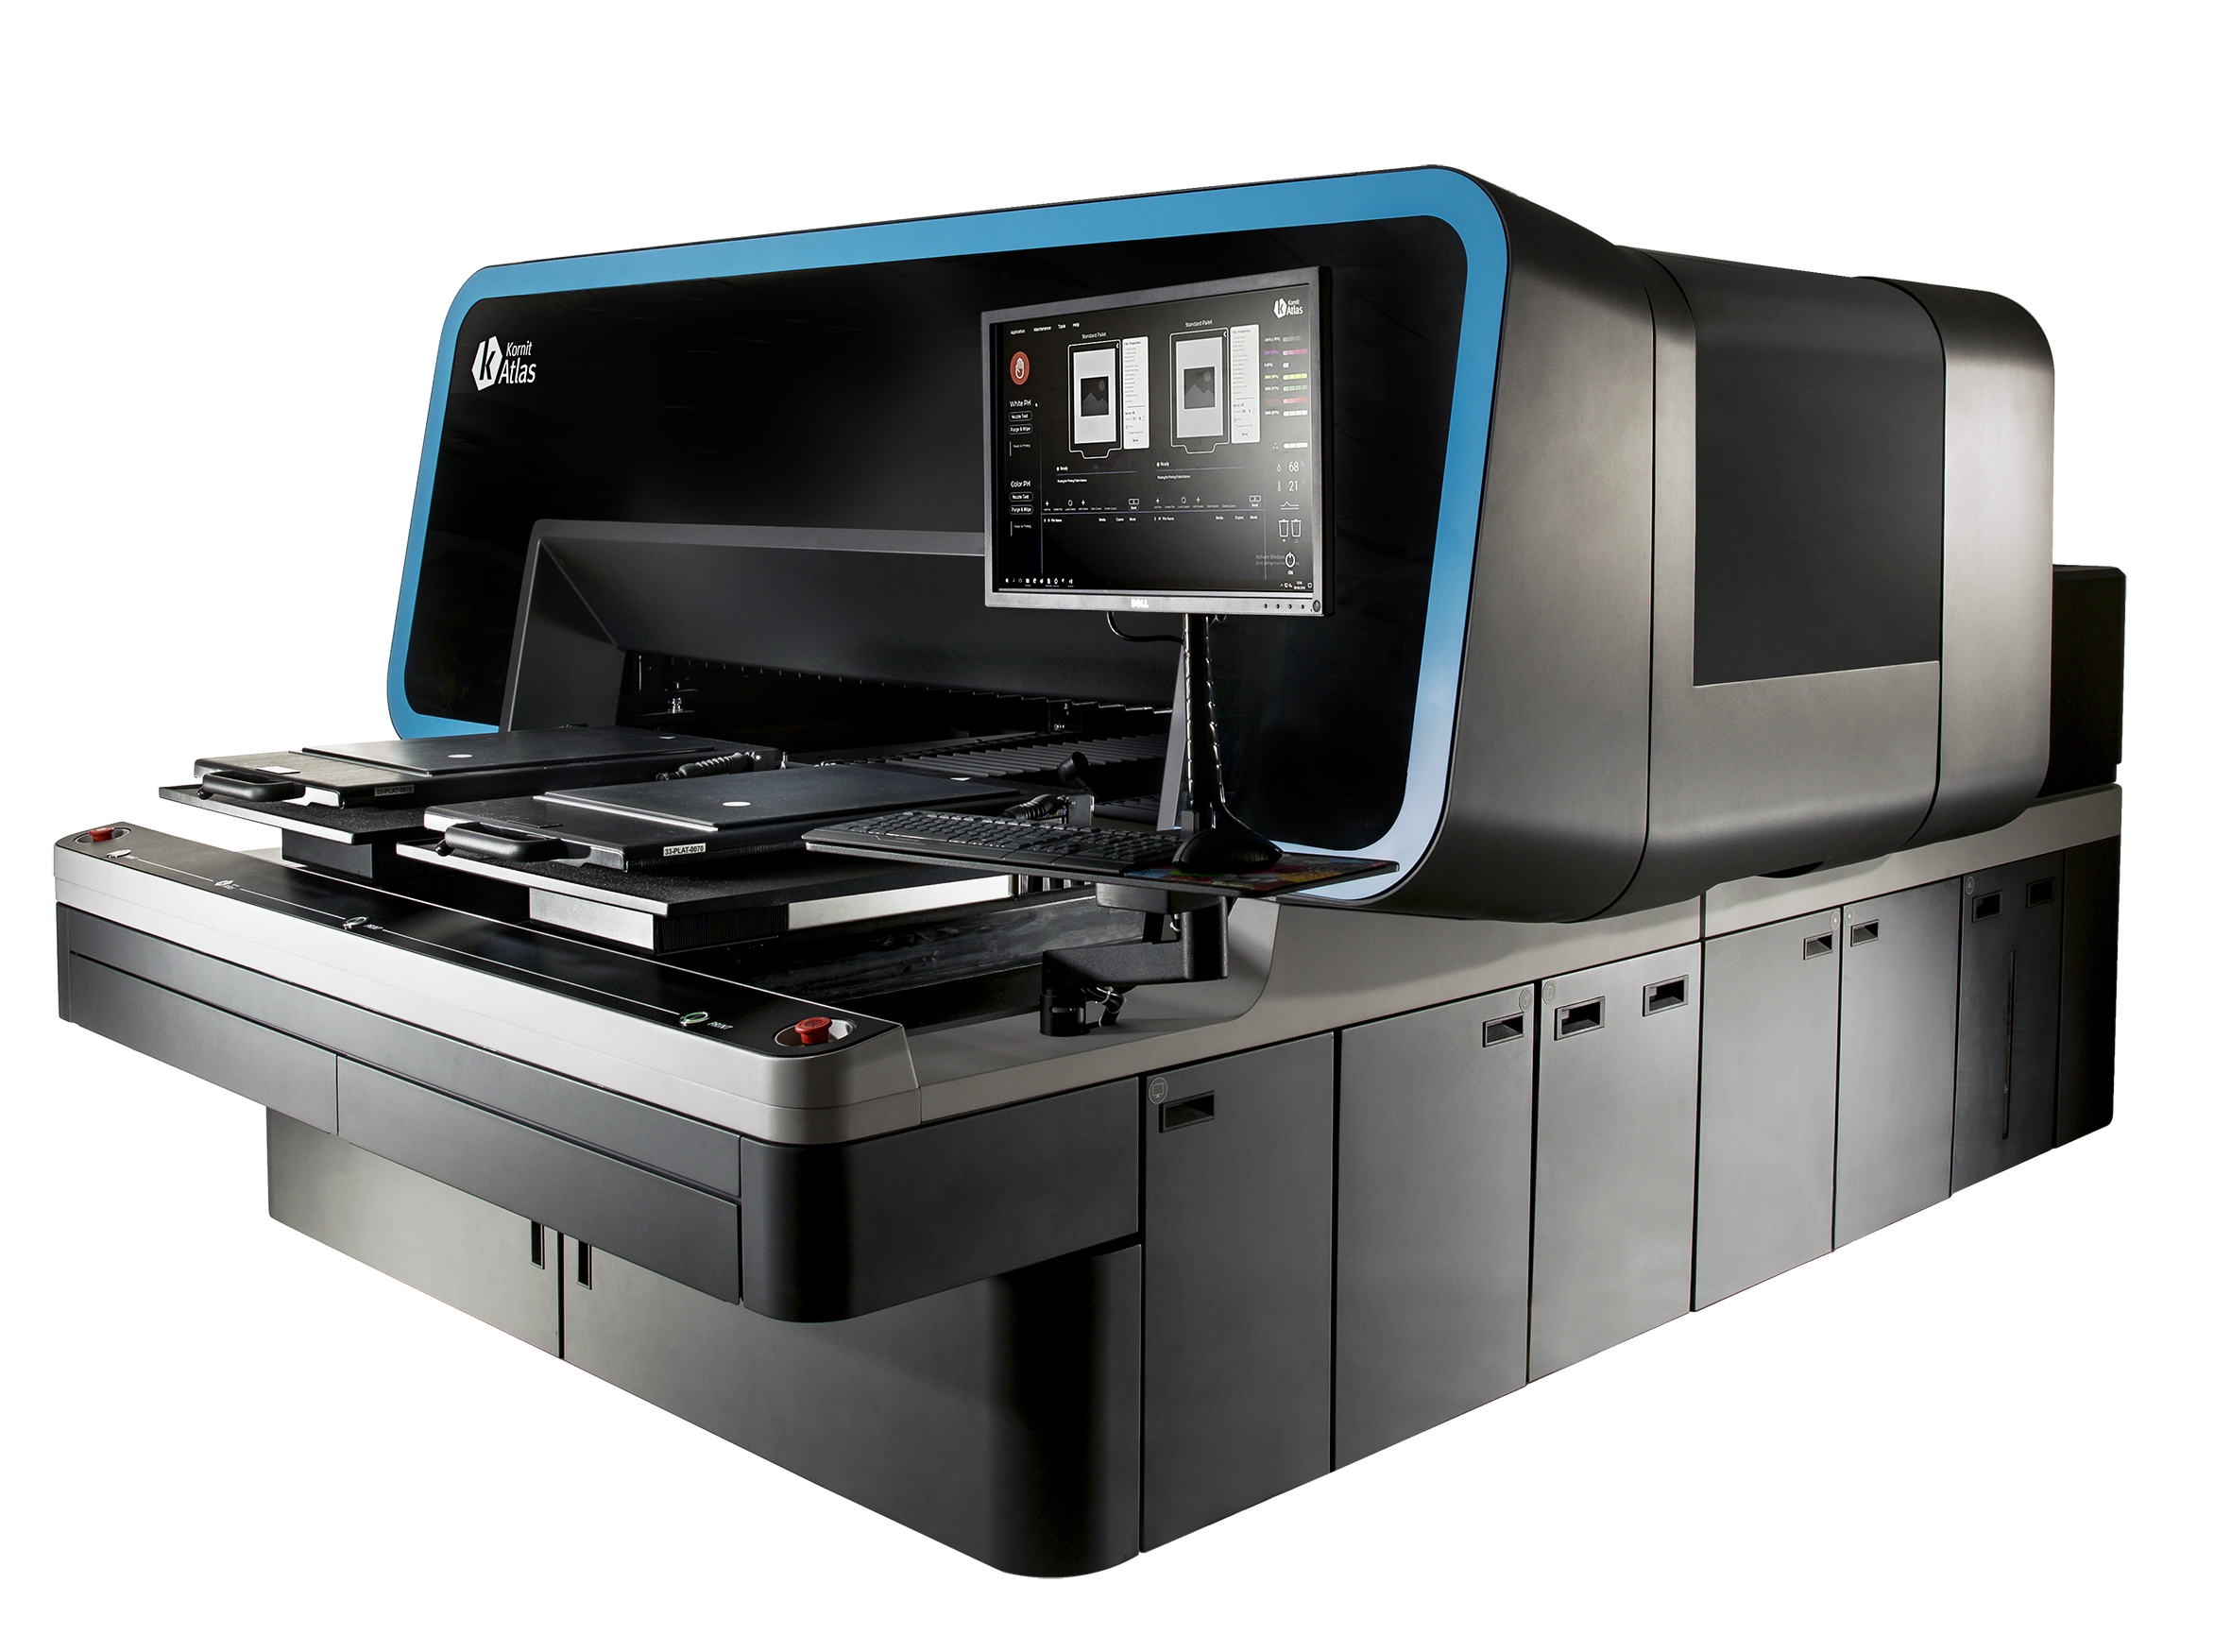 Kornit Digital launches the Atlas, the super-industrial, next-generation direct-to-garment printing platform